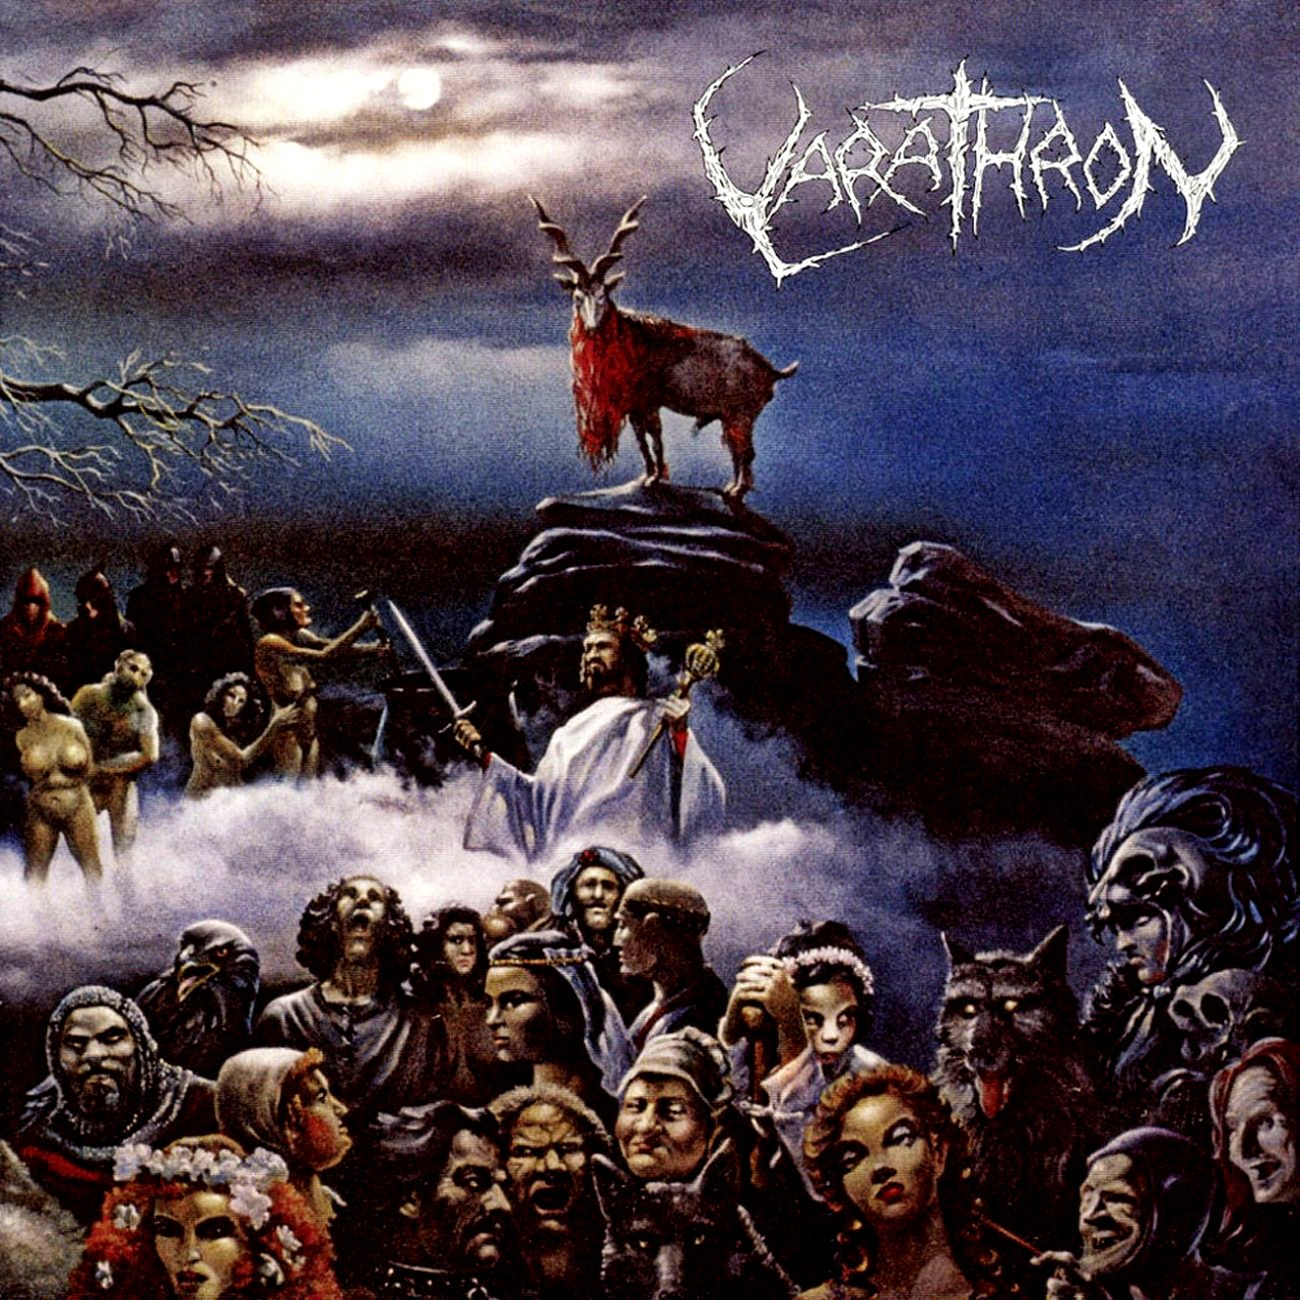 Review for Varathron - Walpurgisnacht